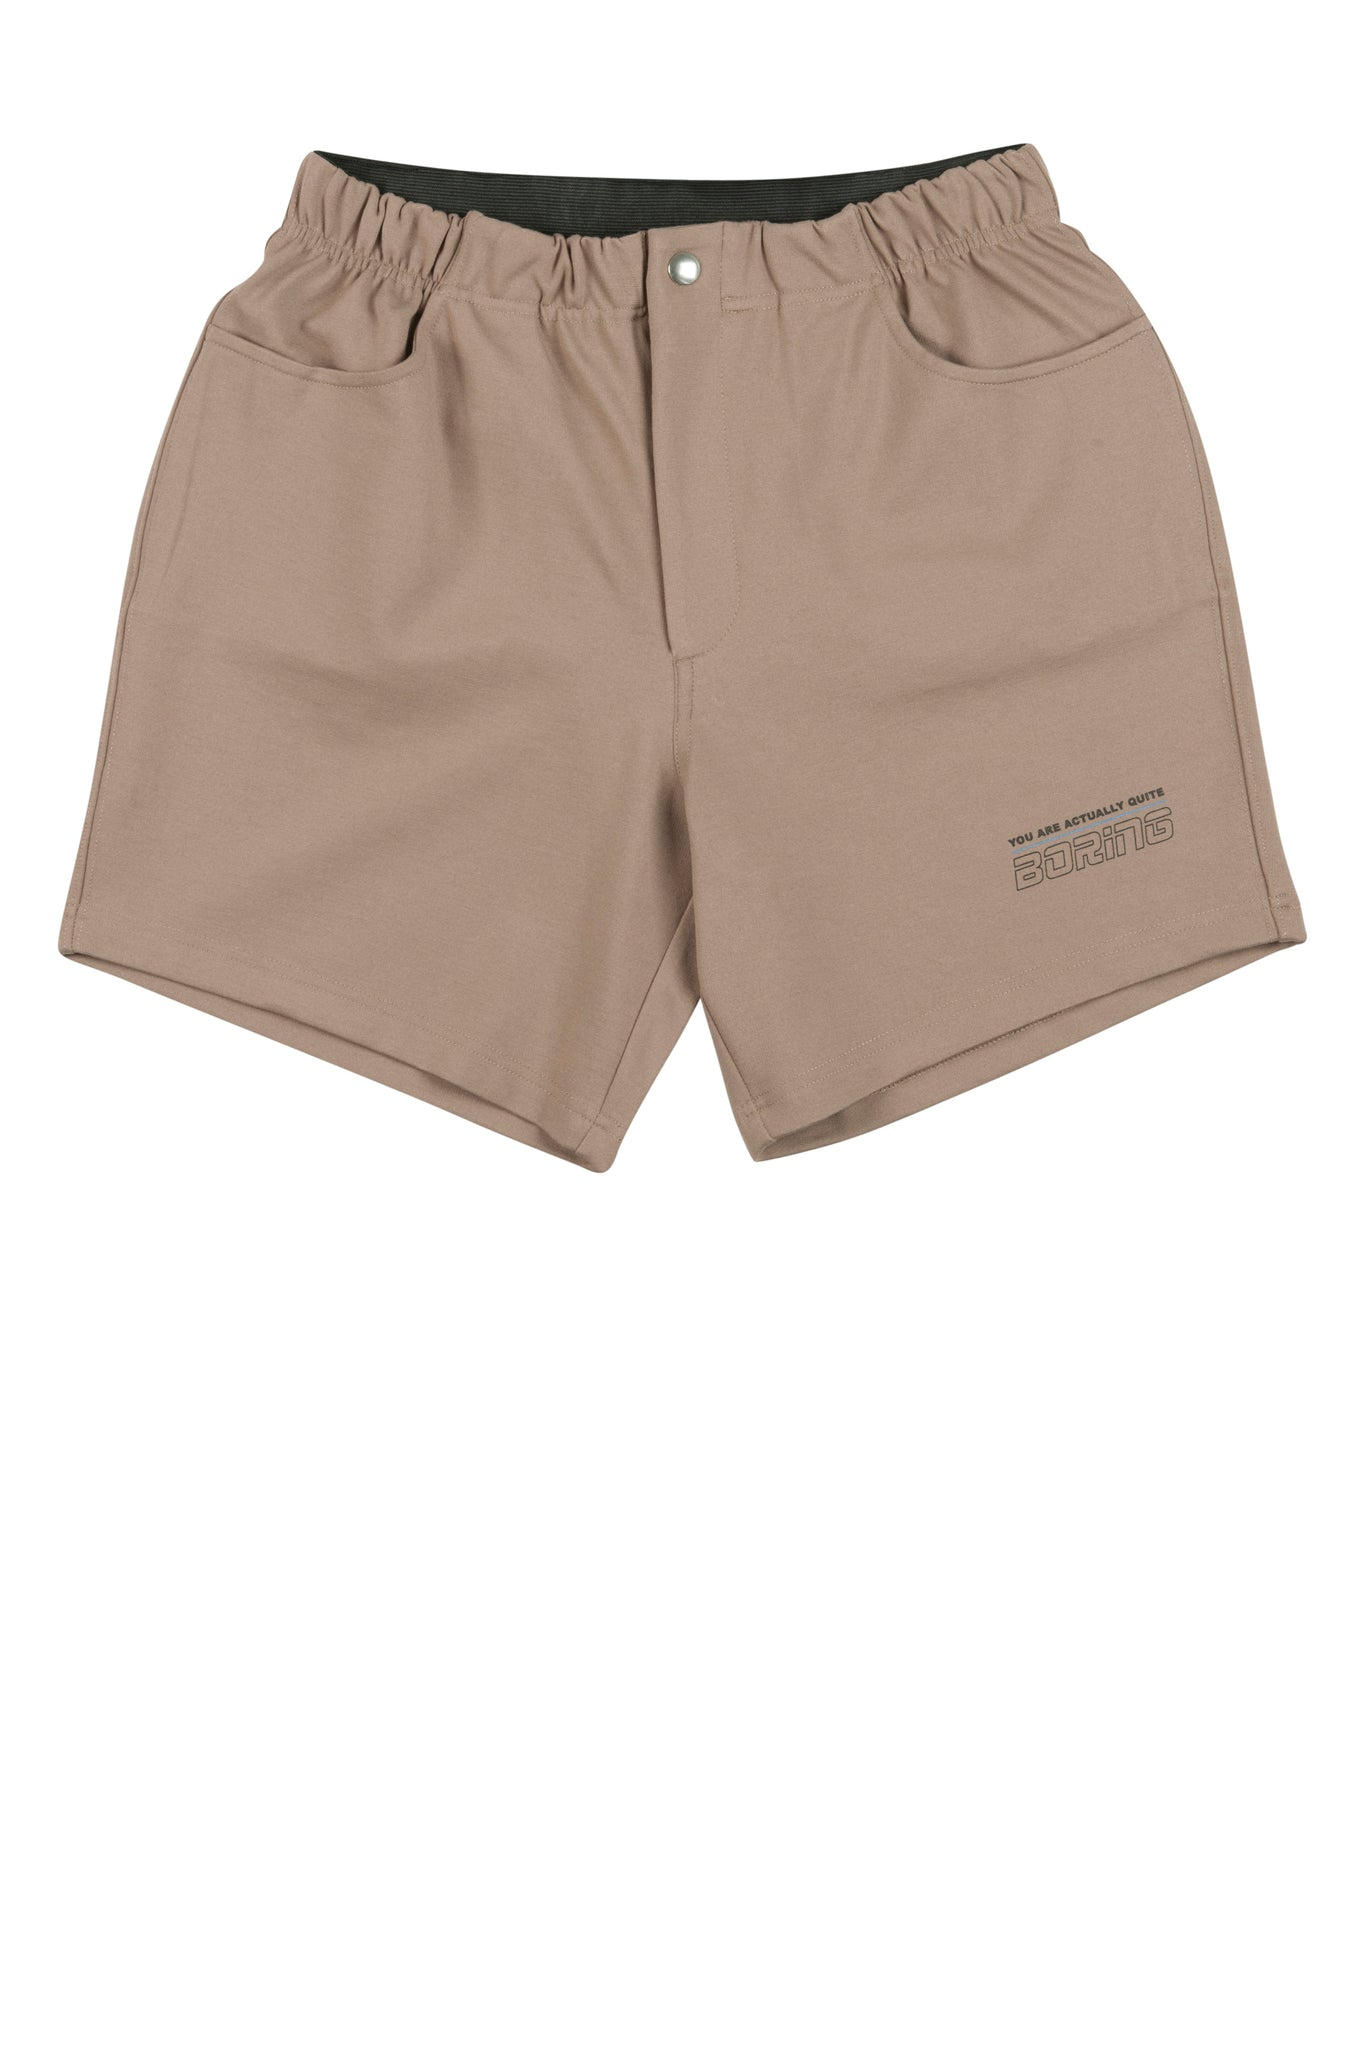 80ties mens tennis shorts from Martin Asbjørn in camel brown with boring print ma